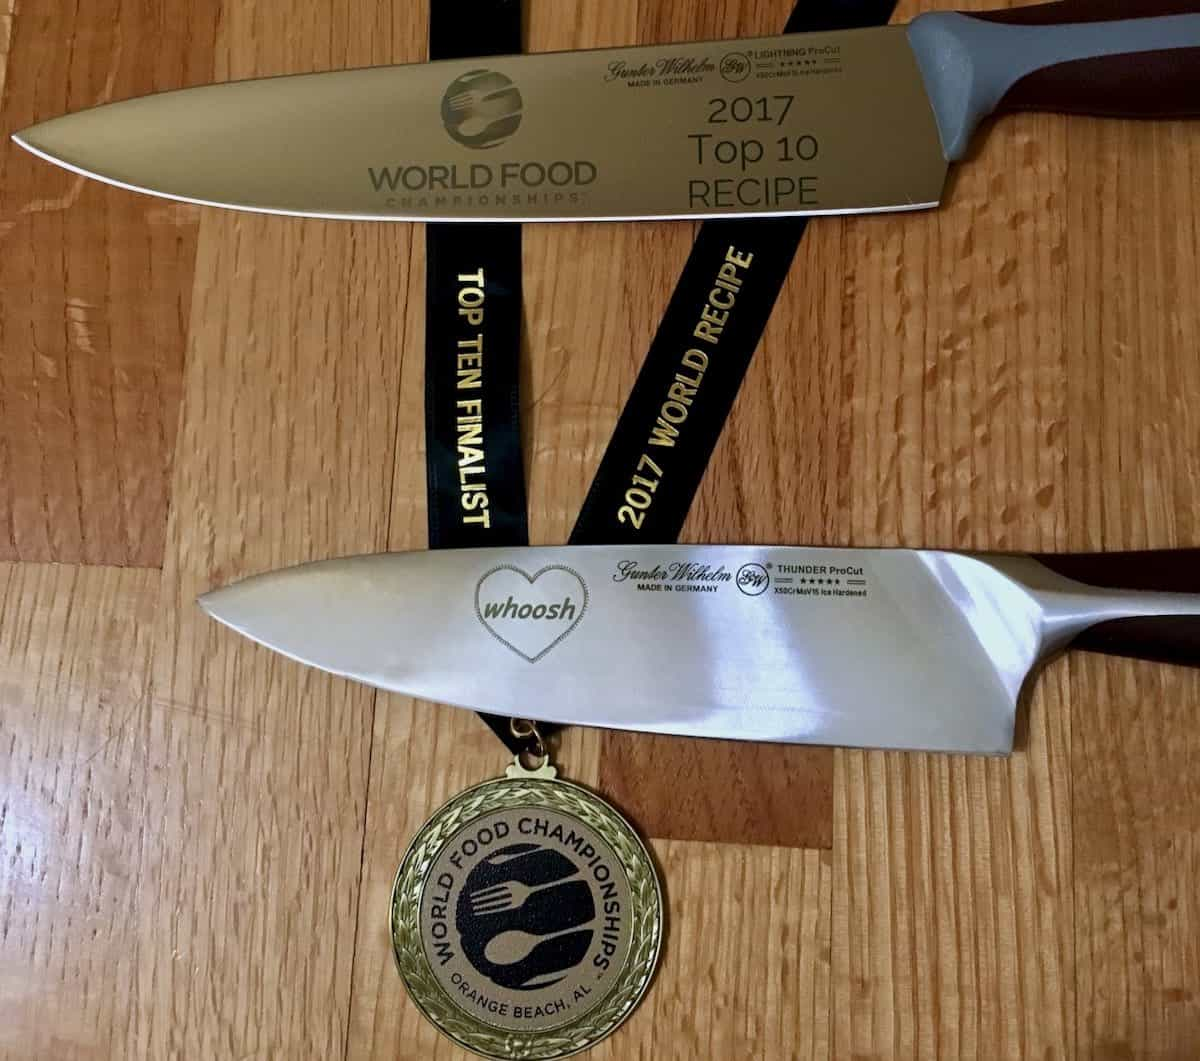 chef knives and medalist at the World Food Championships